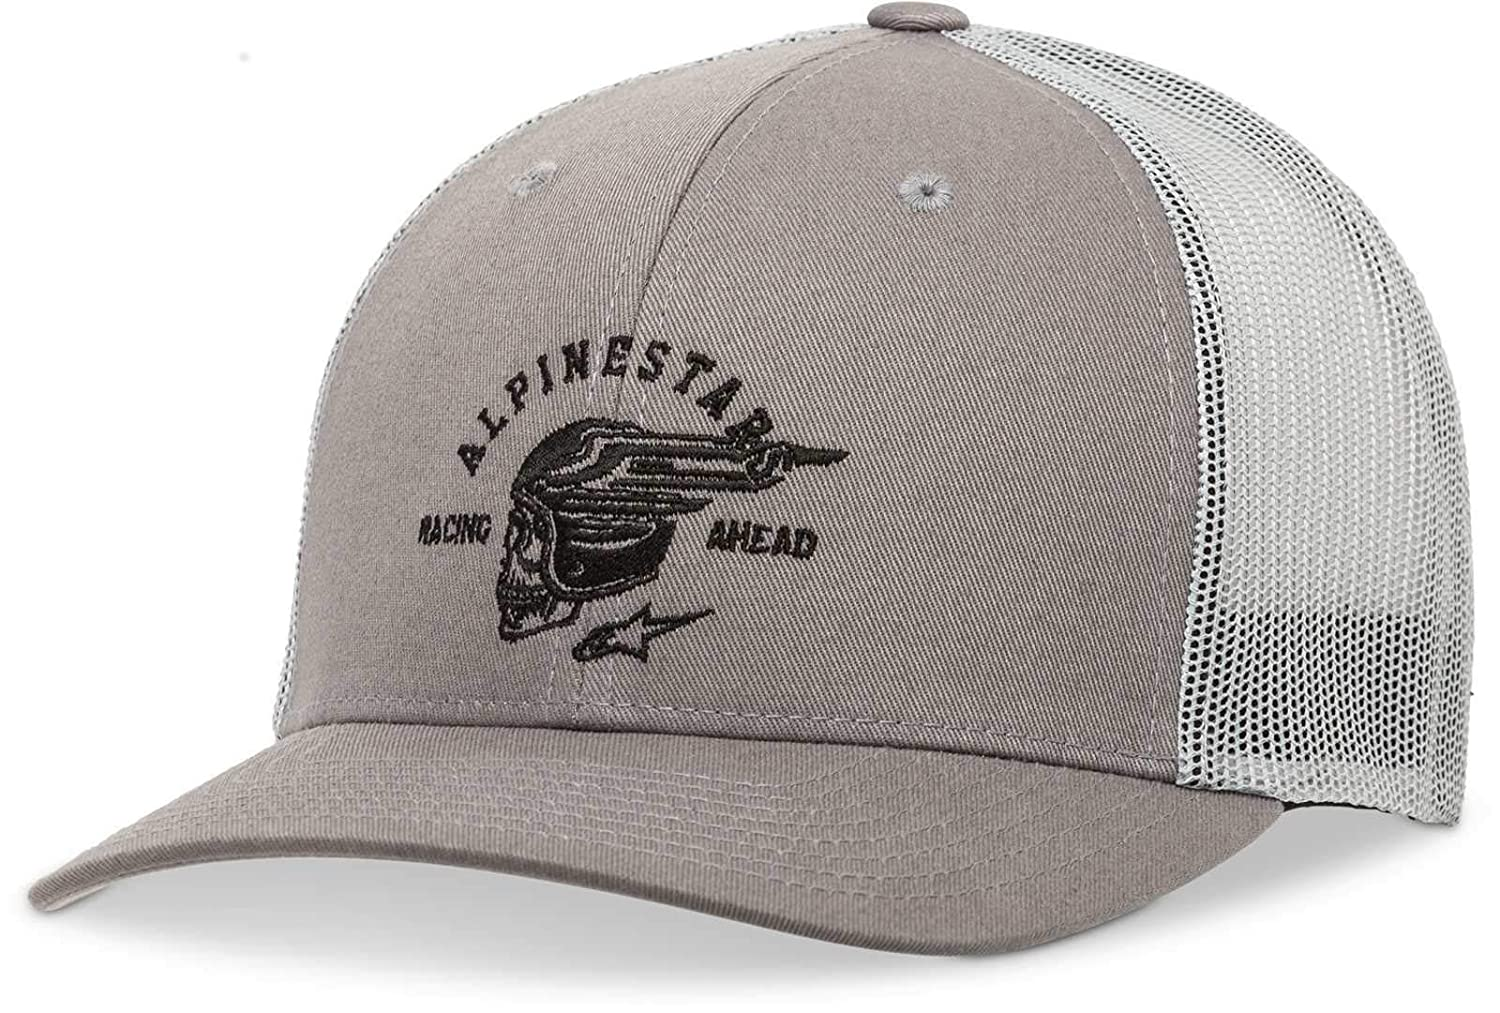 2e8cc3b2 Amazon.com: Alpinestars Men's Logo Flexfit hat Curved Bill Trucker ...